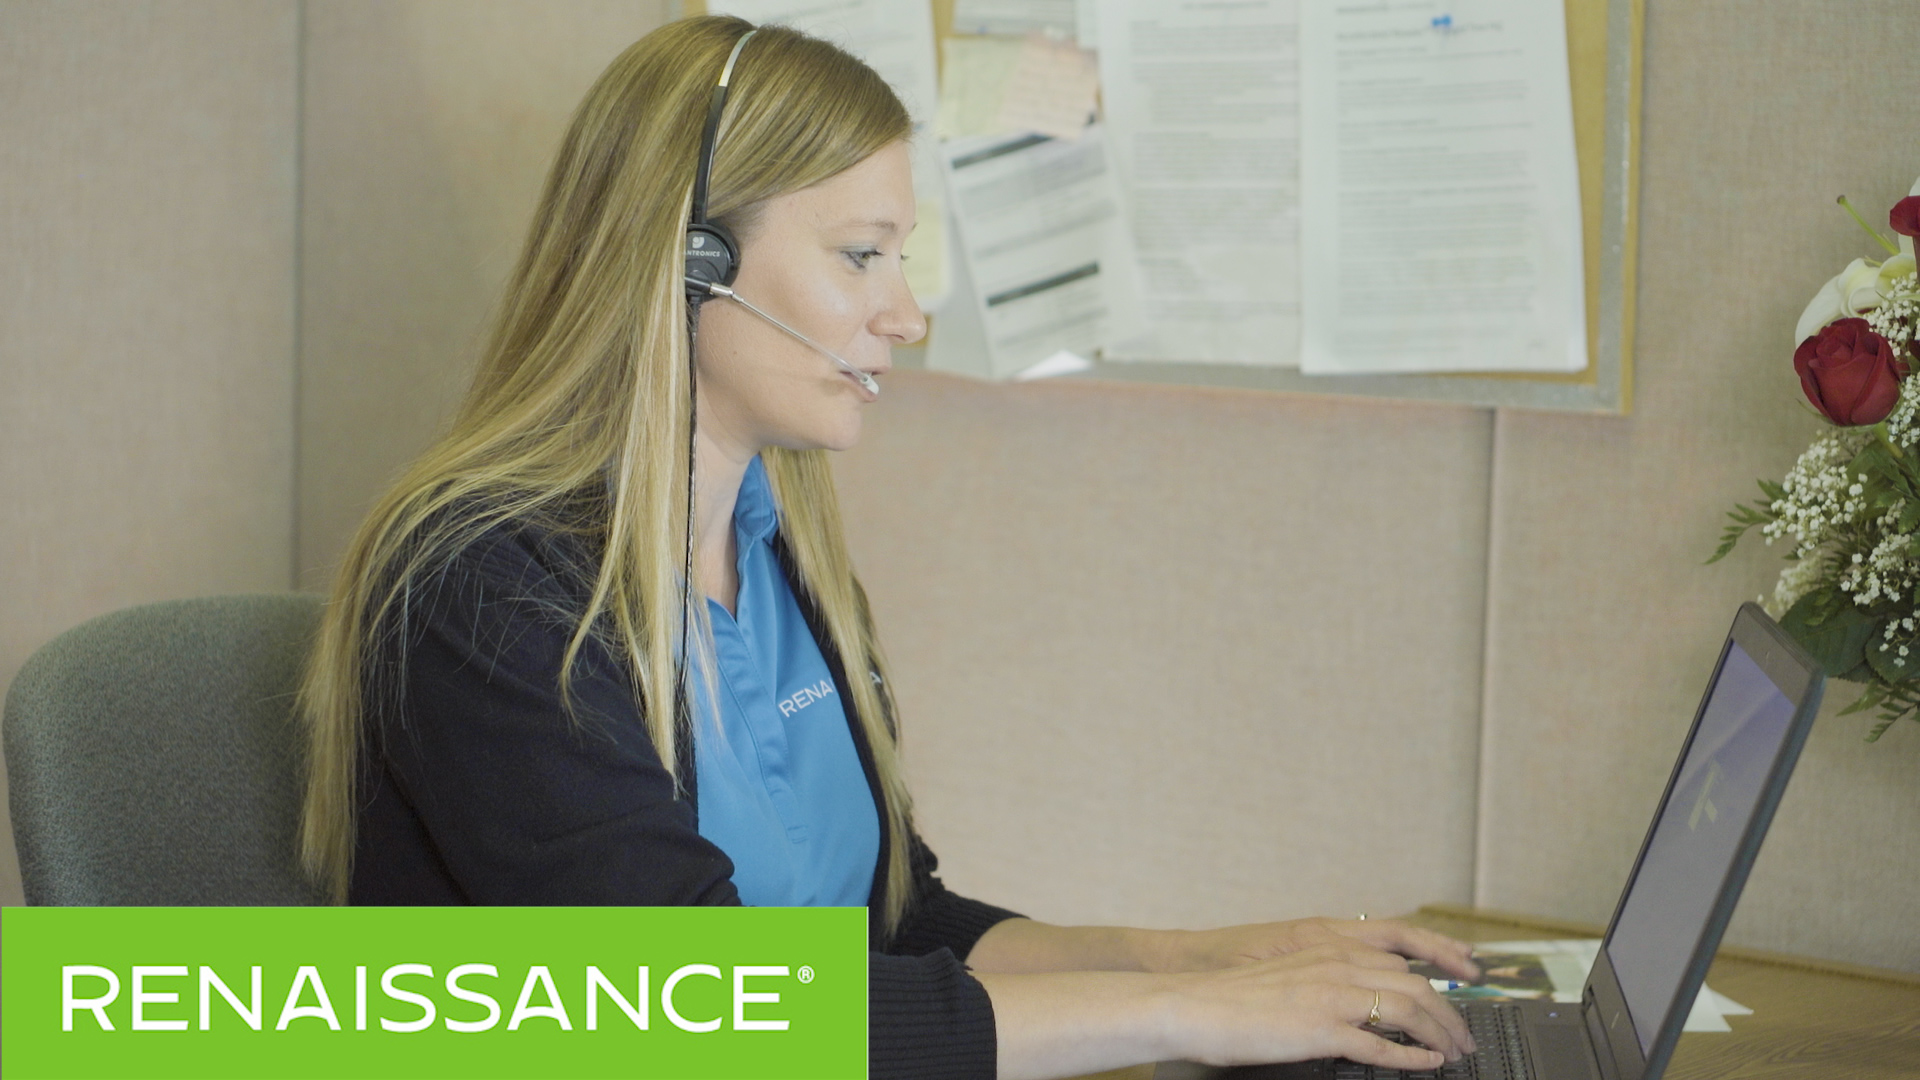 Renaissance® Customer Help and Support